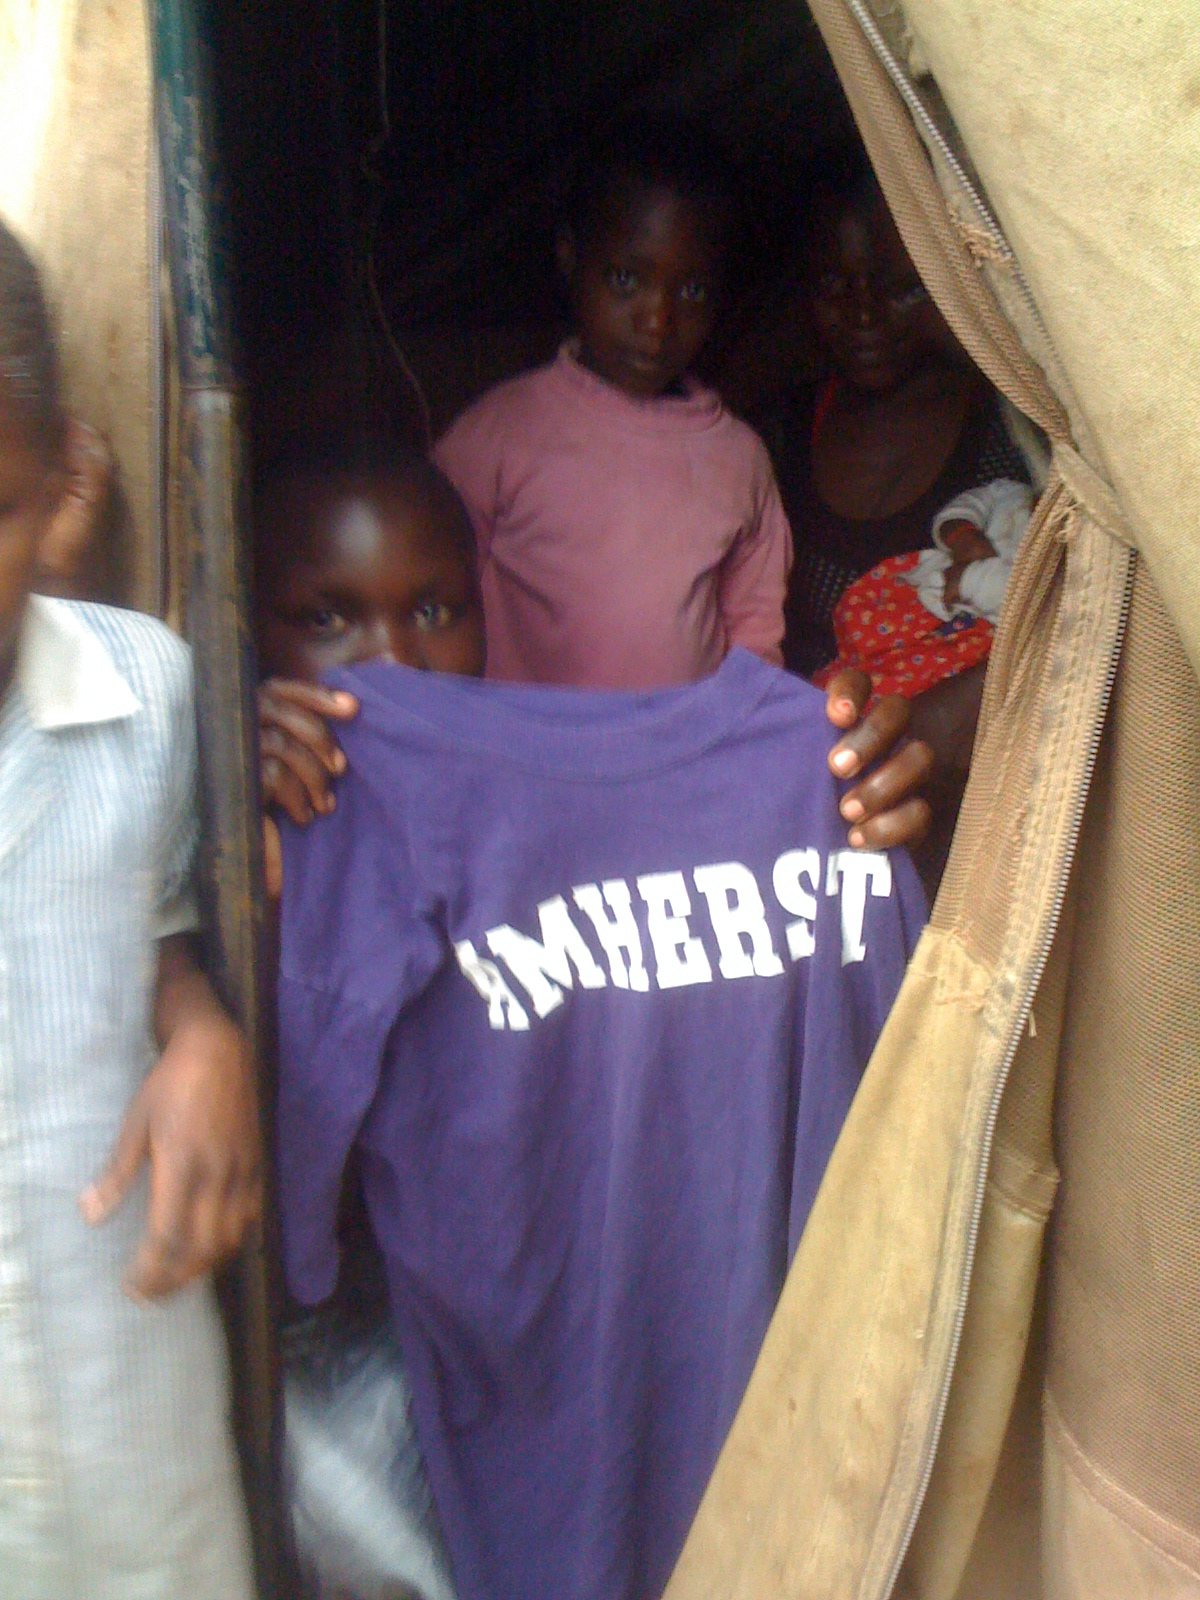 Ugandan Child holding an Amherst t-shirt